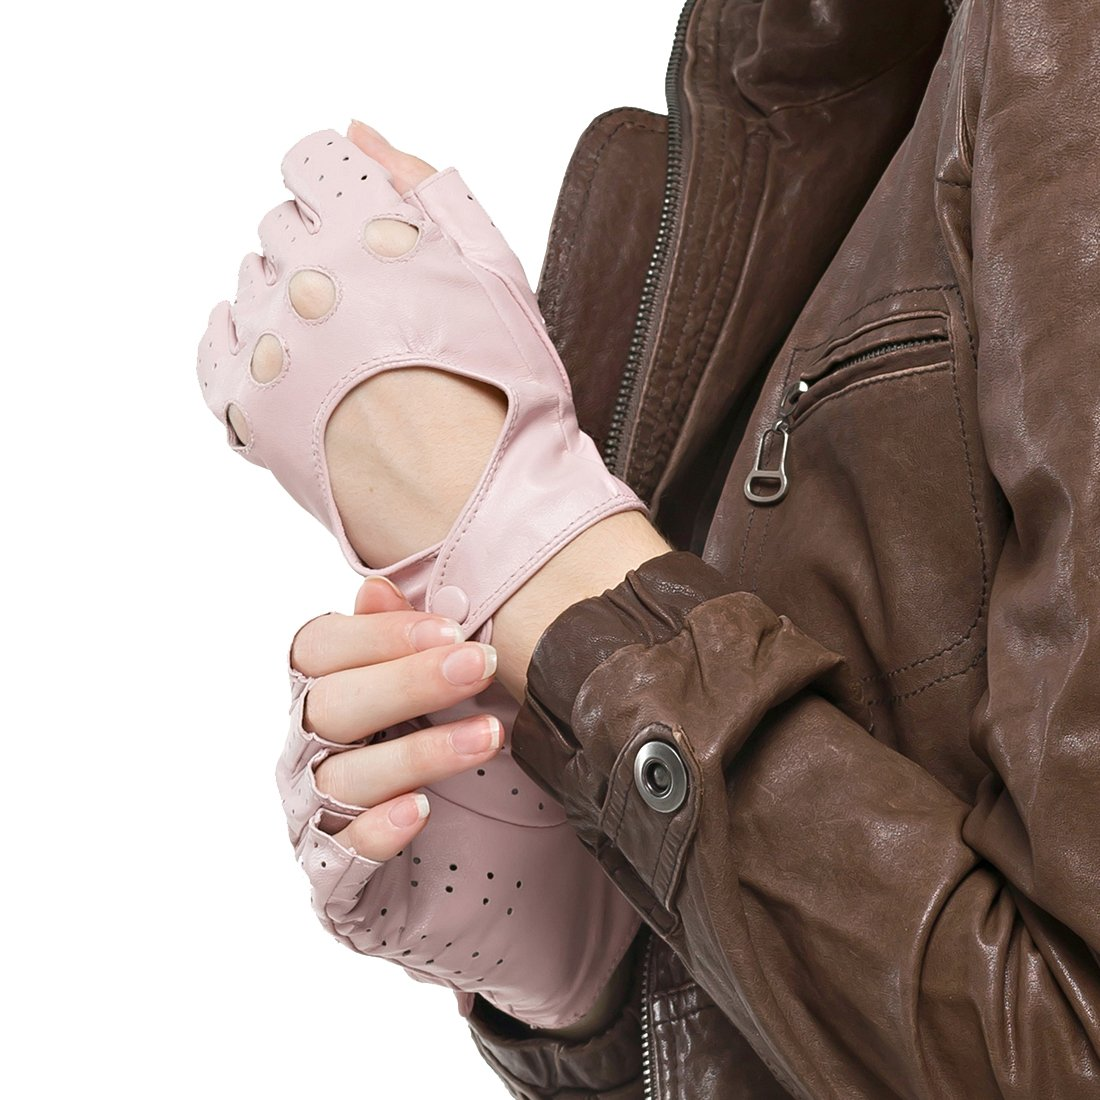 Nappaglo Women's Classic Half Finger Leather Driving Gloves Fingerless Lambskin Fitness Outdoor Unlined Gloves DBE216